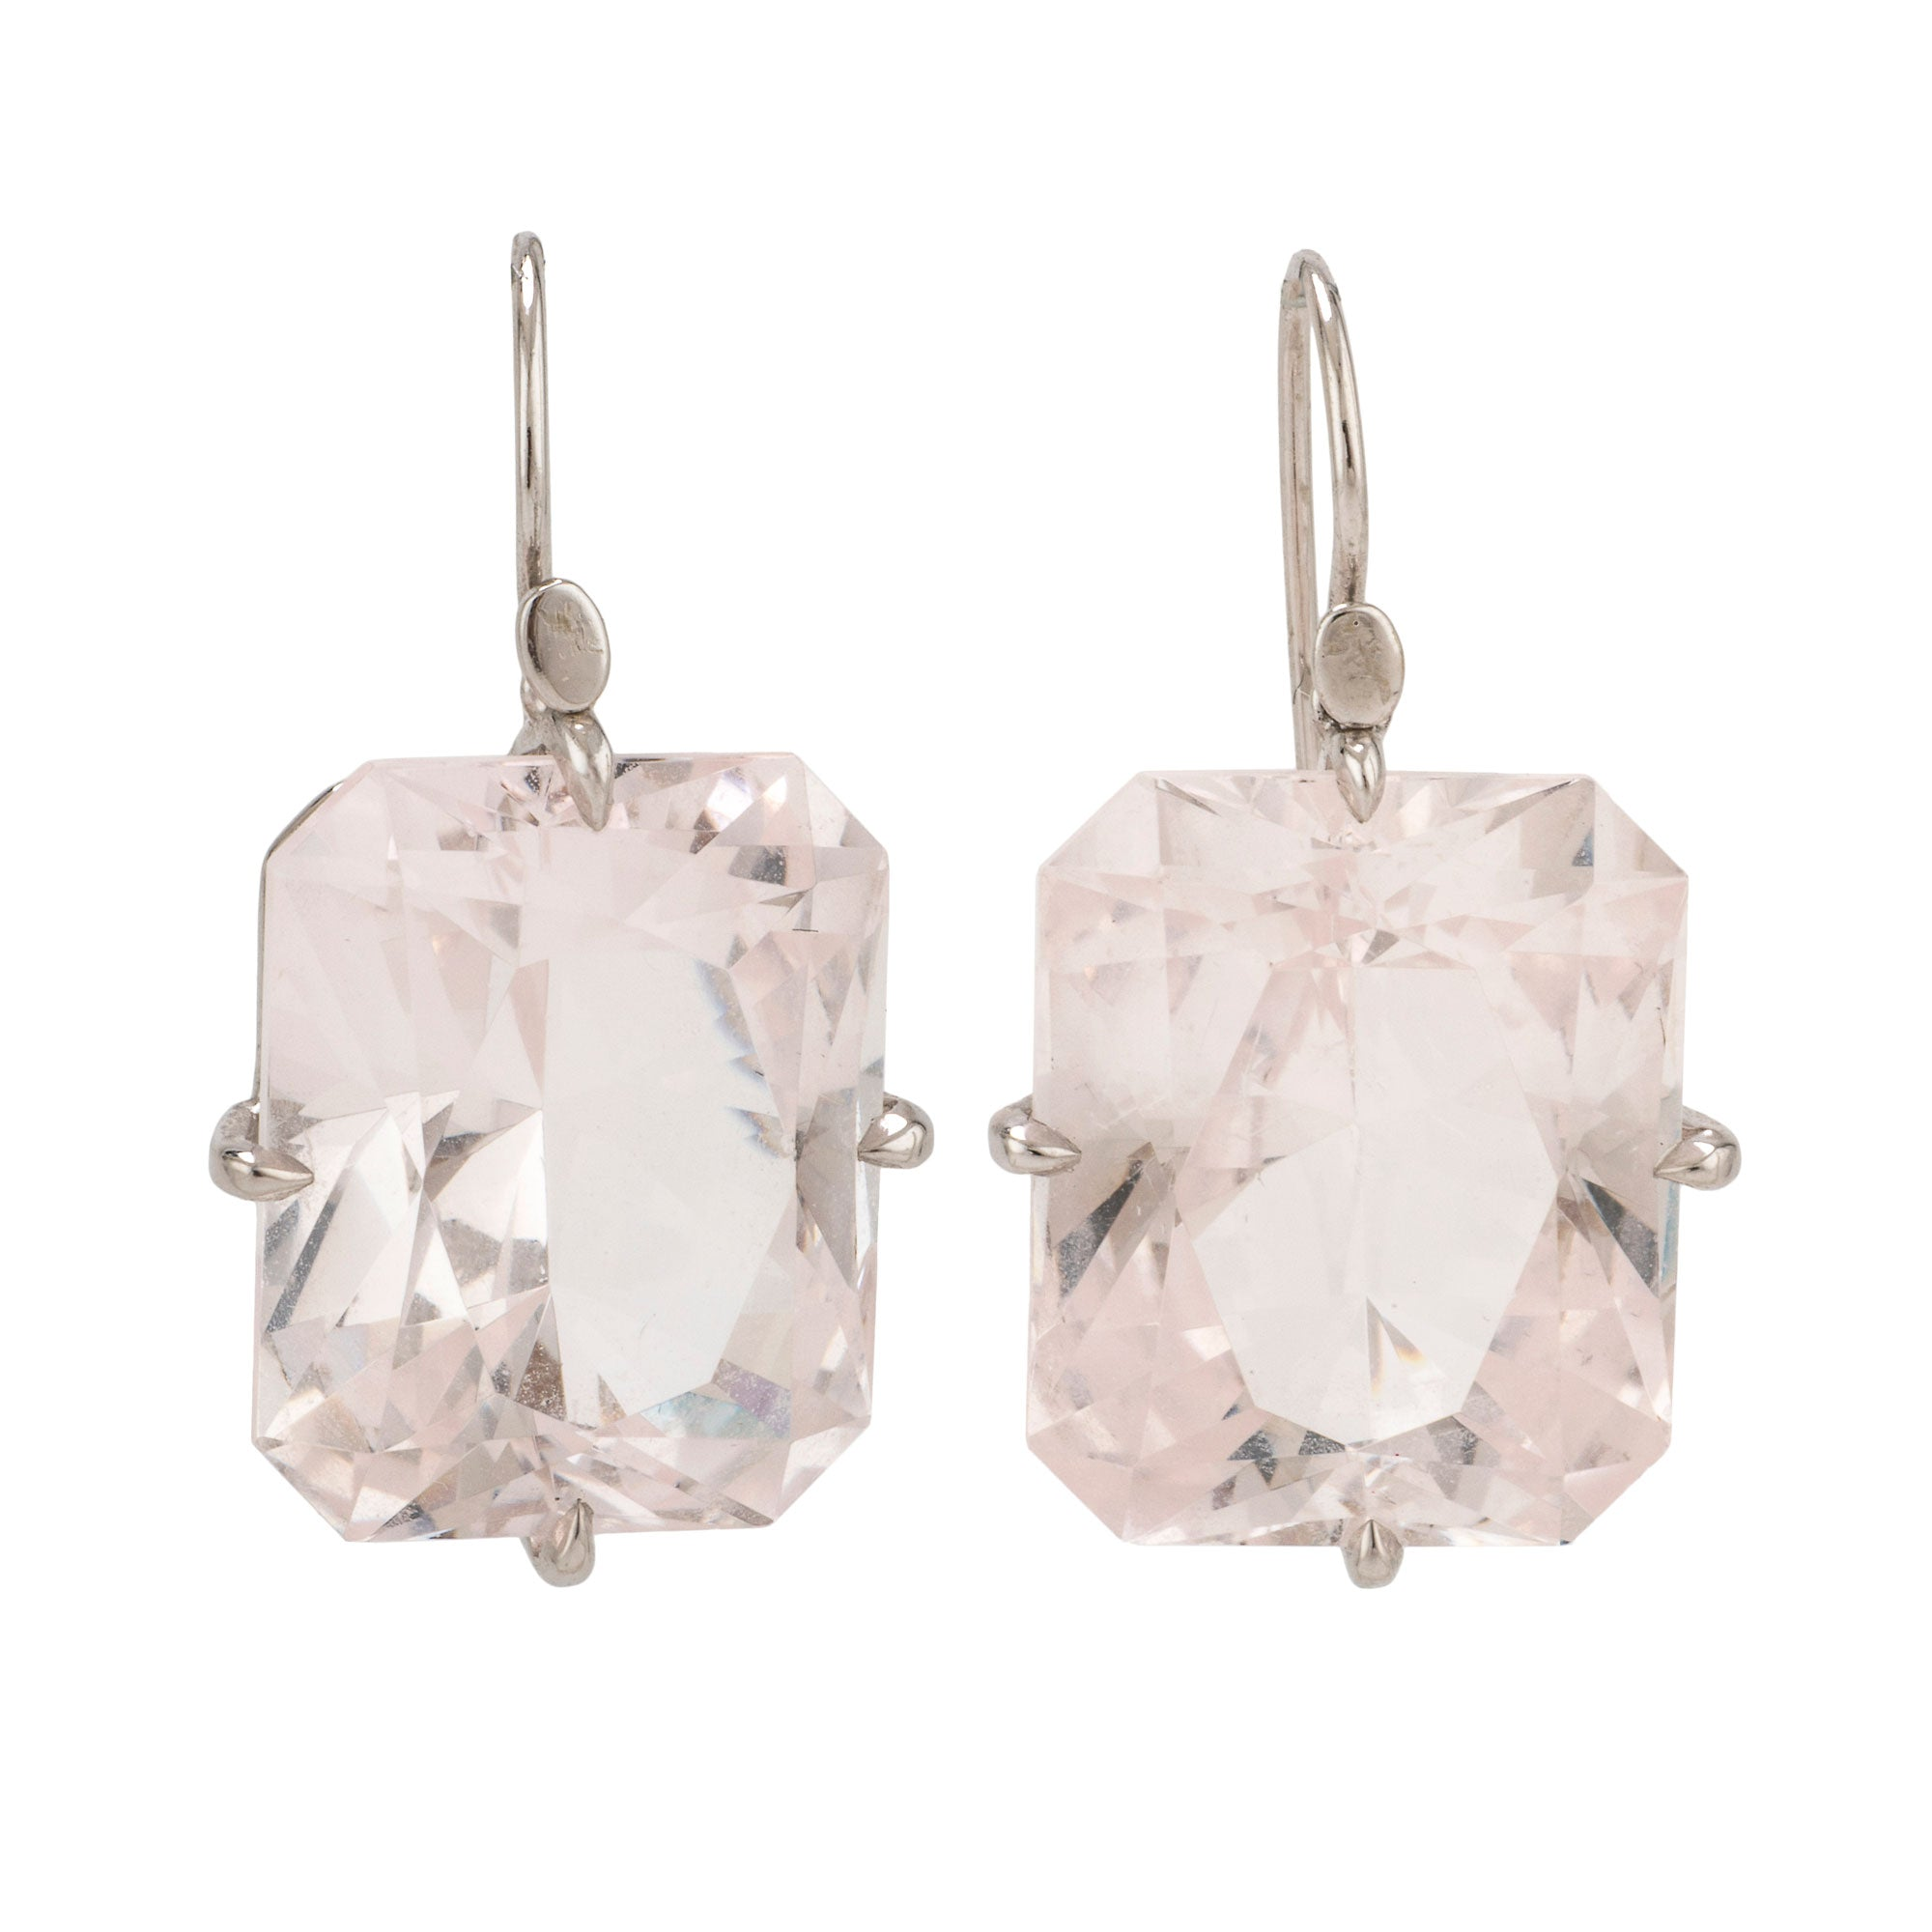 Czech i danburite earrings